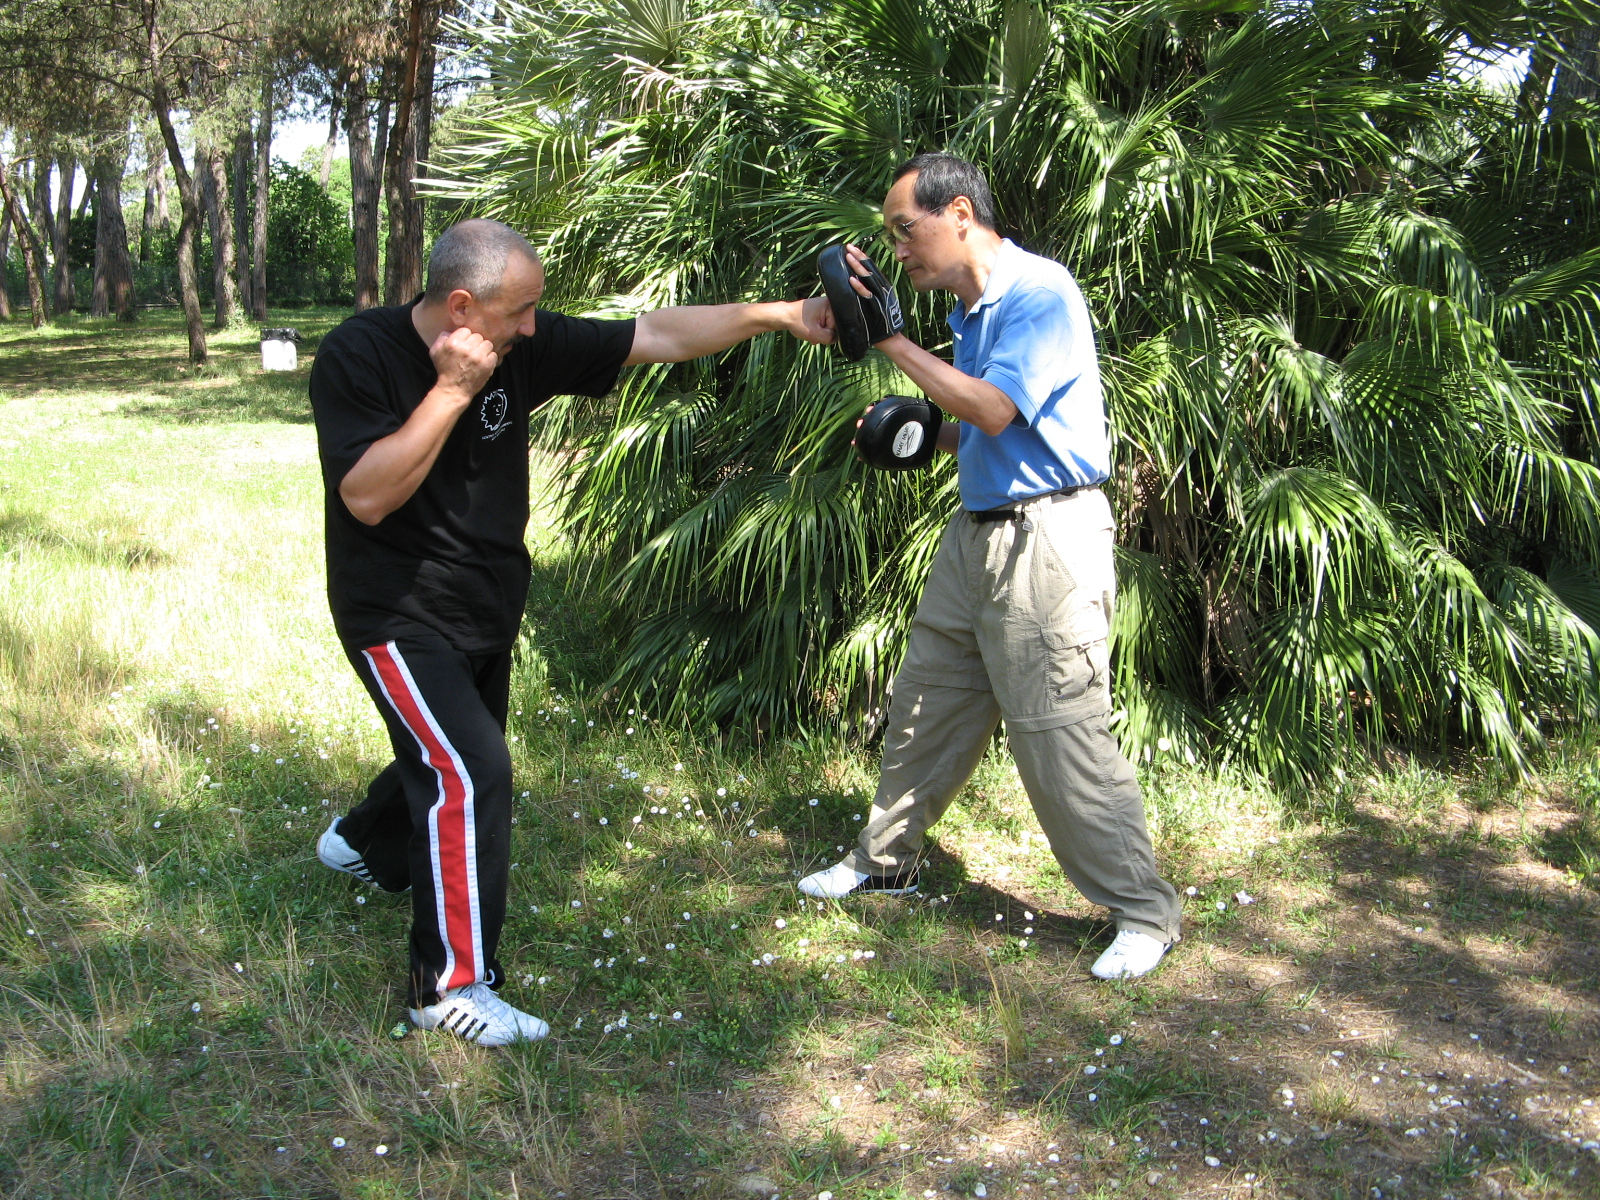 Jeet Kune Do Milano CAAM Fighters Terzulli Carmine e Ted Wong